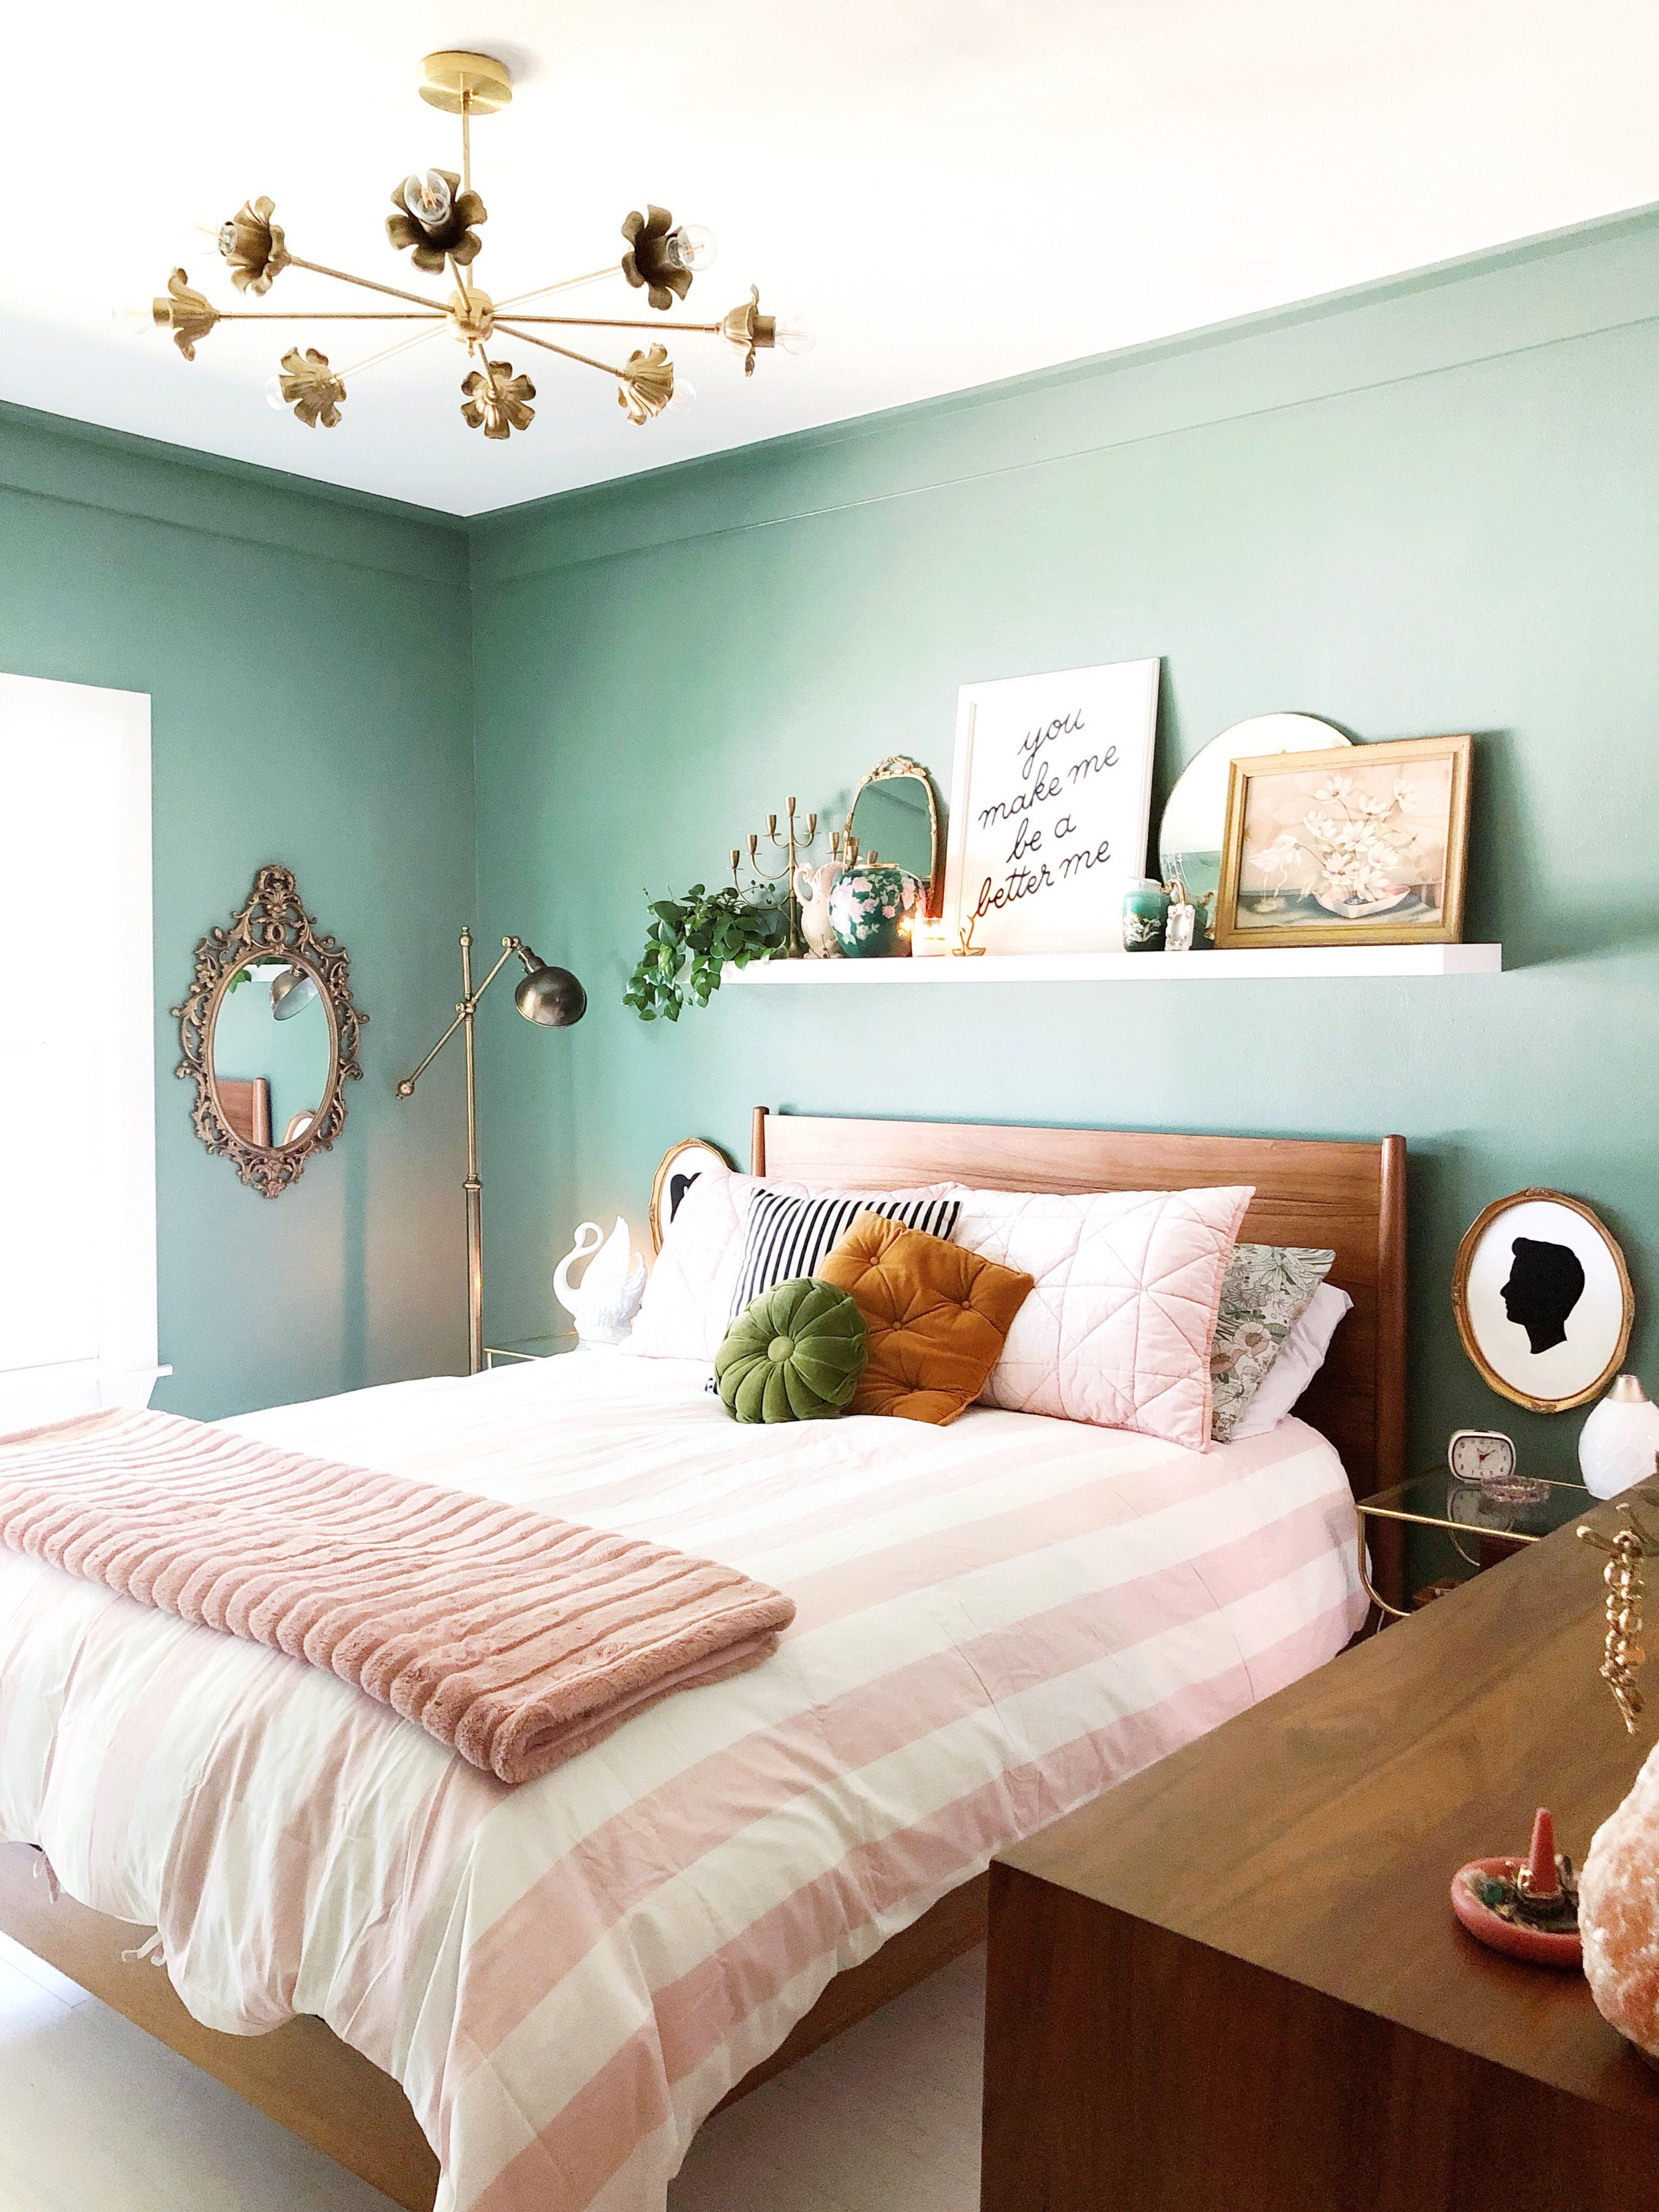 Pink And Green Bedroom Decor This Room Blends Midcentury Modern